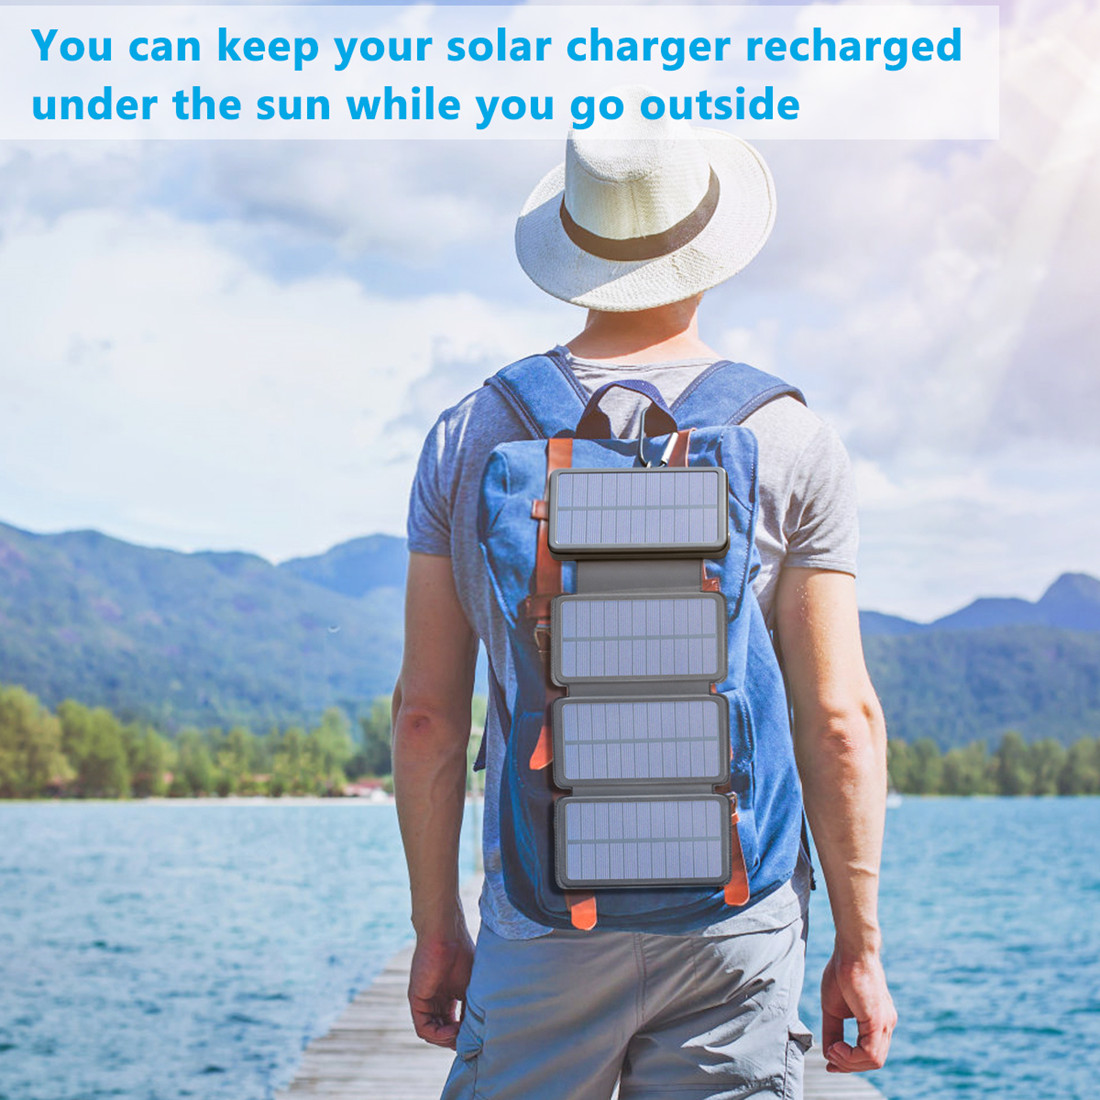 Tranmix Solar Charger 25000mAh Power Bank with USB-C Port Waterproof Portable Phone Charger for Smart Phones, Tablets and More